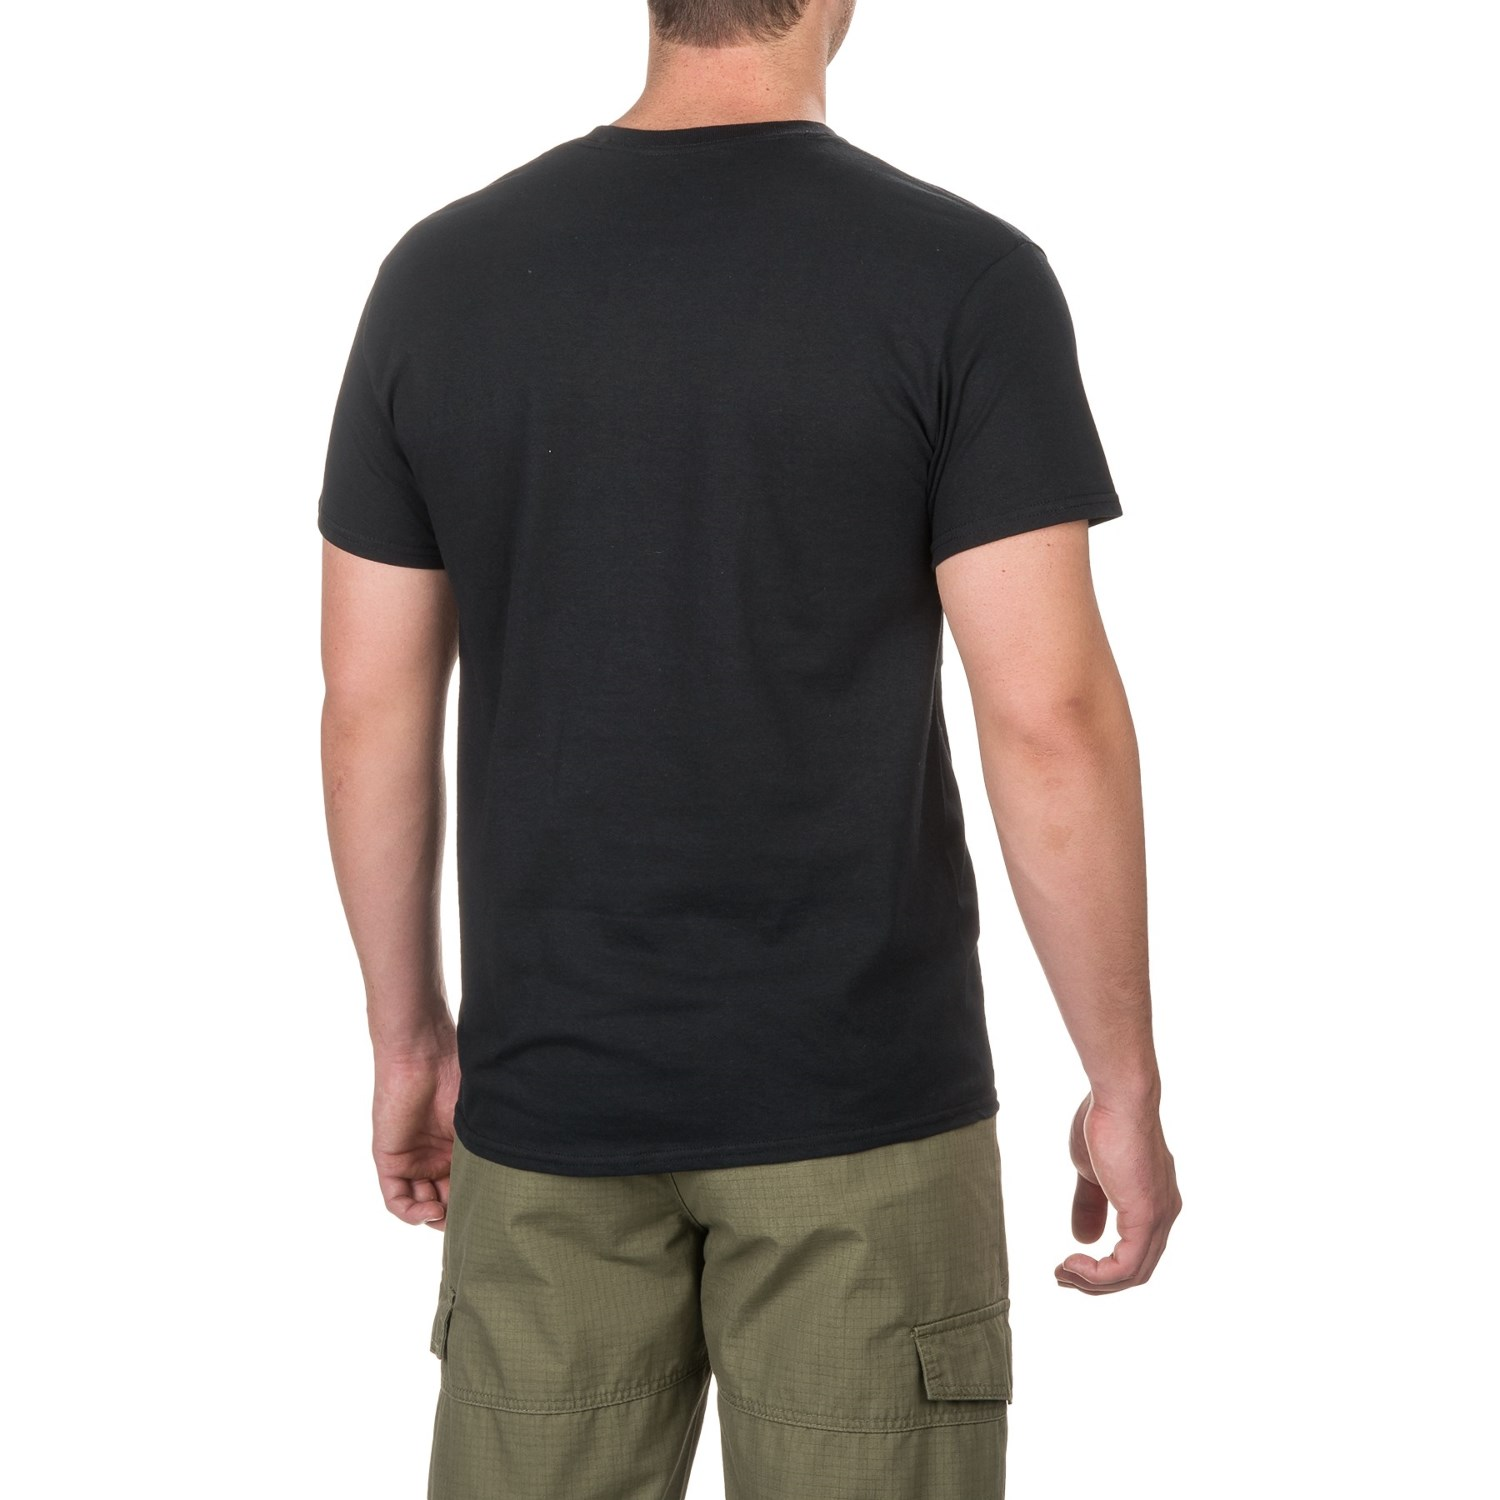 Browning camo corporate logo t shirt for men save 50 for Corporate shirts for men